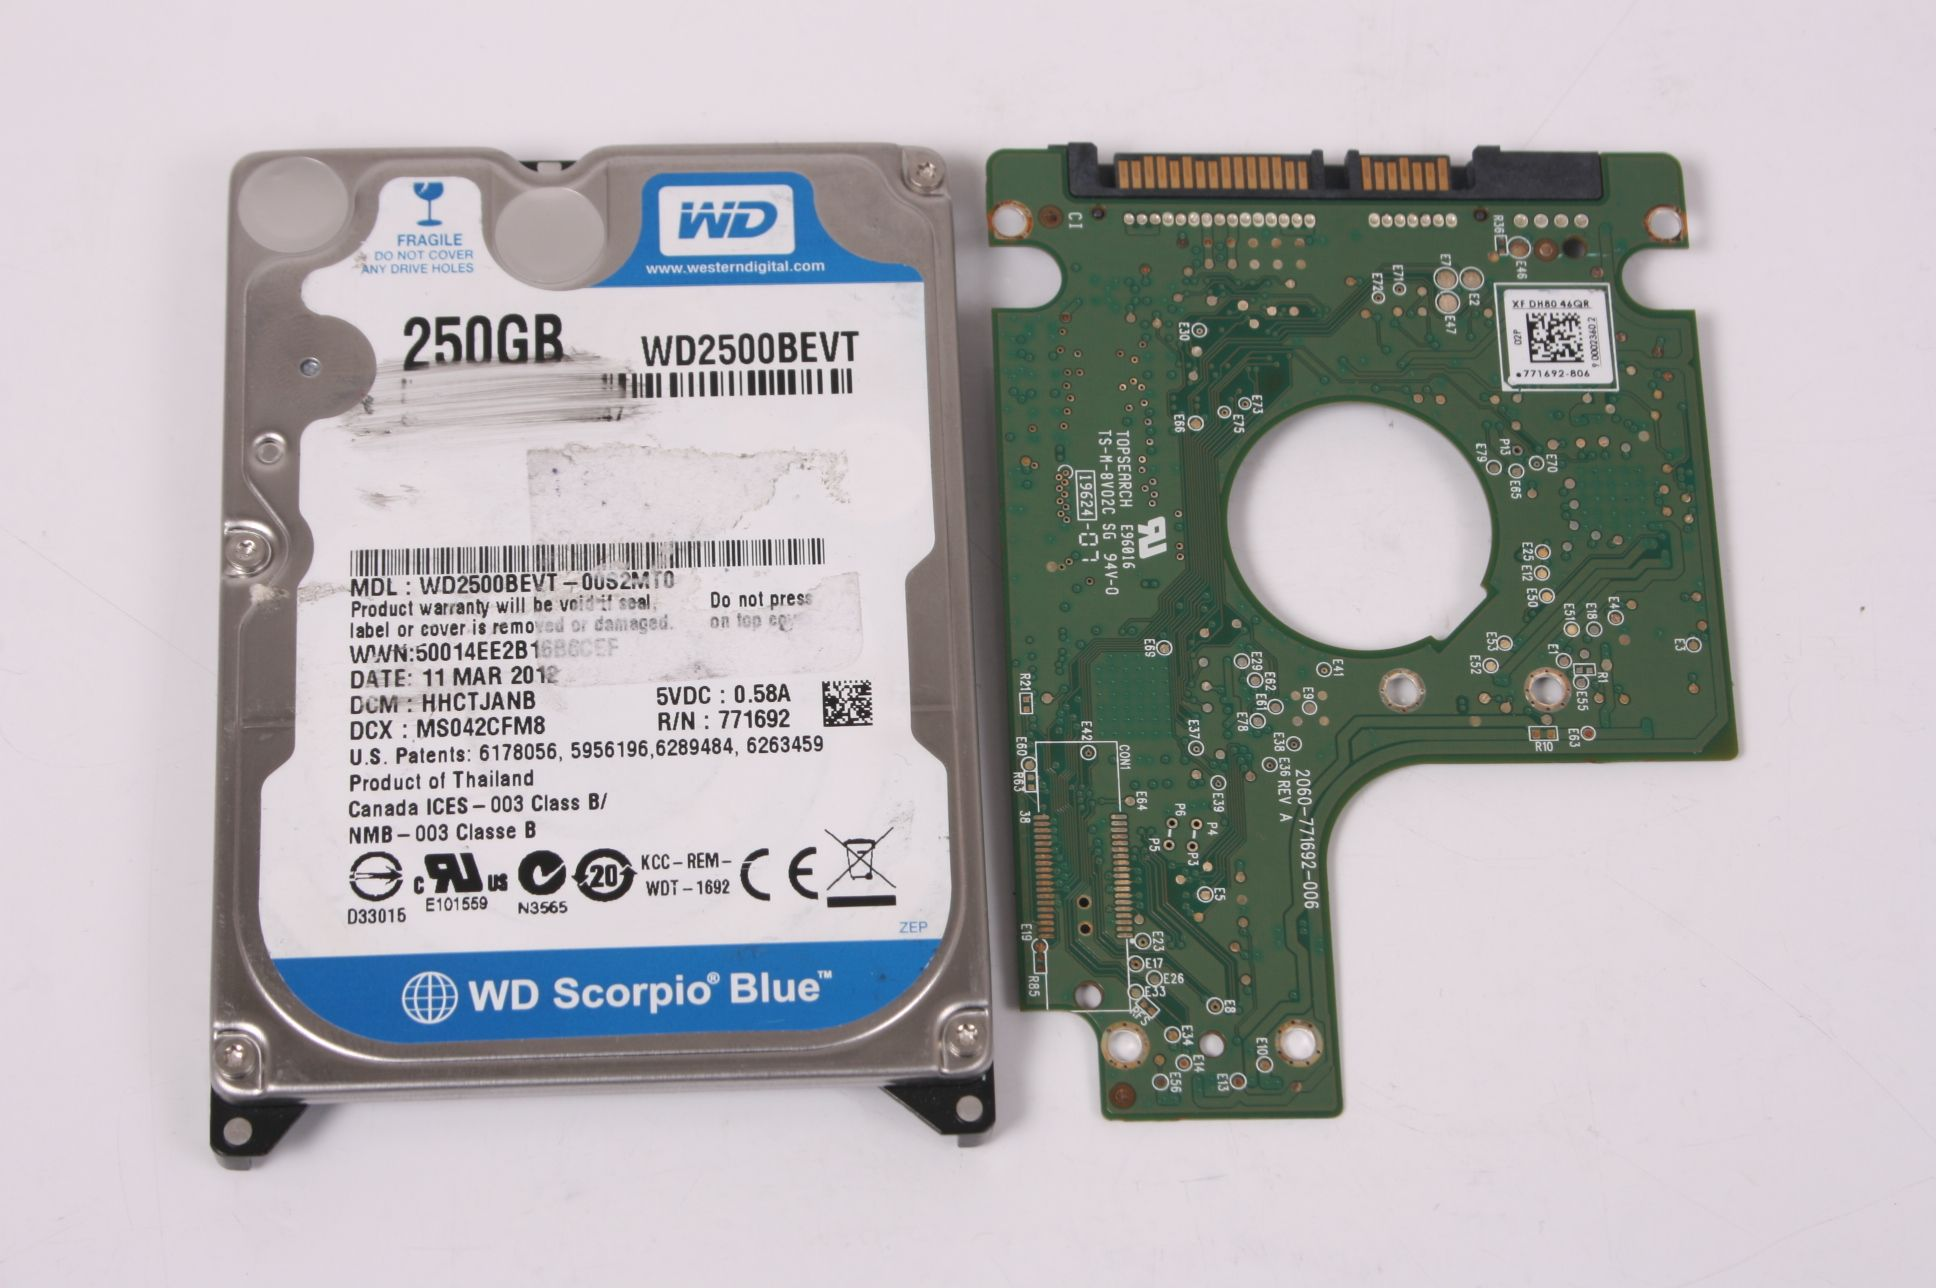 WD WD2500BEVT-00S2MT0 250GB SATA 2,5 HARD DRIVE / PCB (CIRCUIT BOARD) ONLY FOR DATA